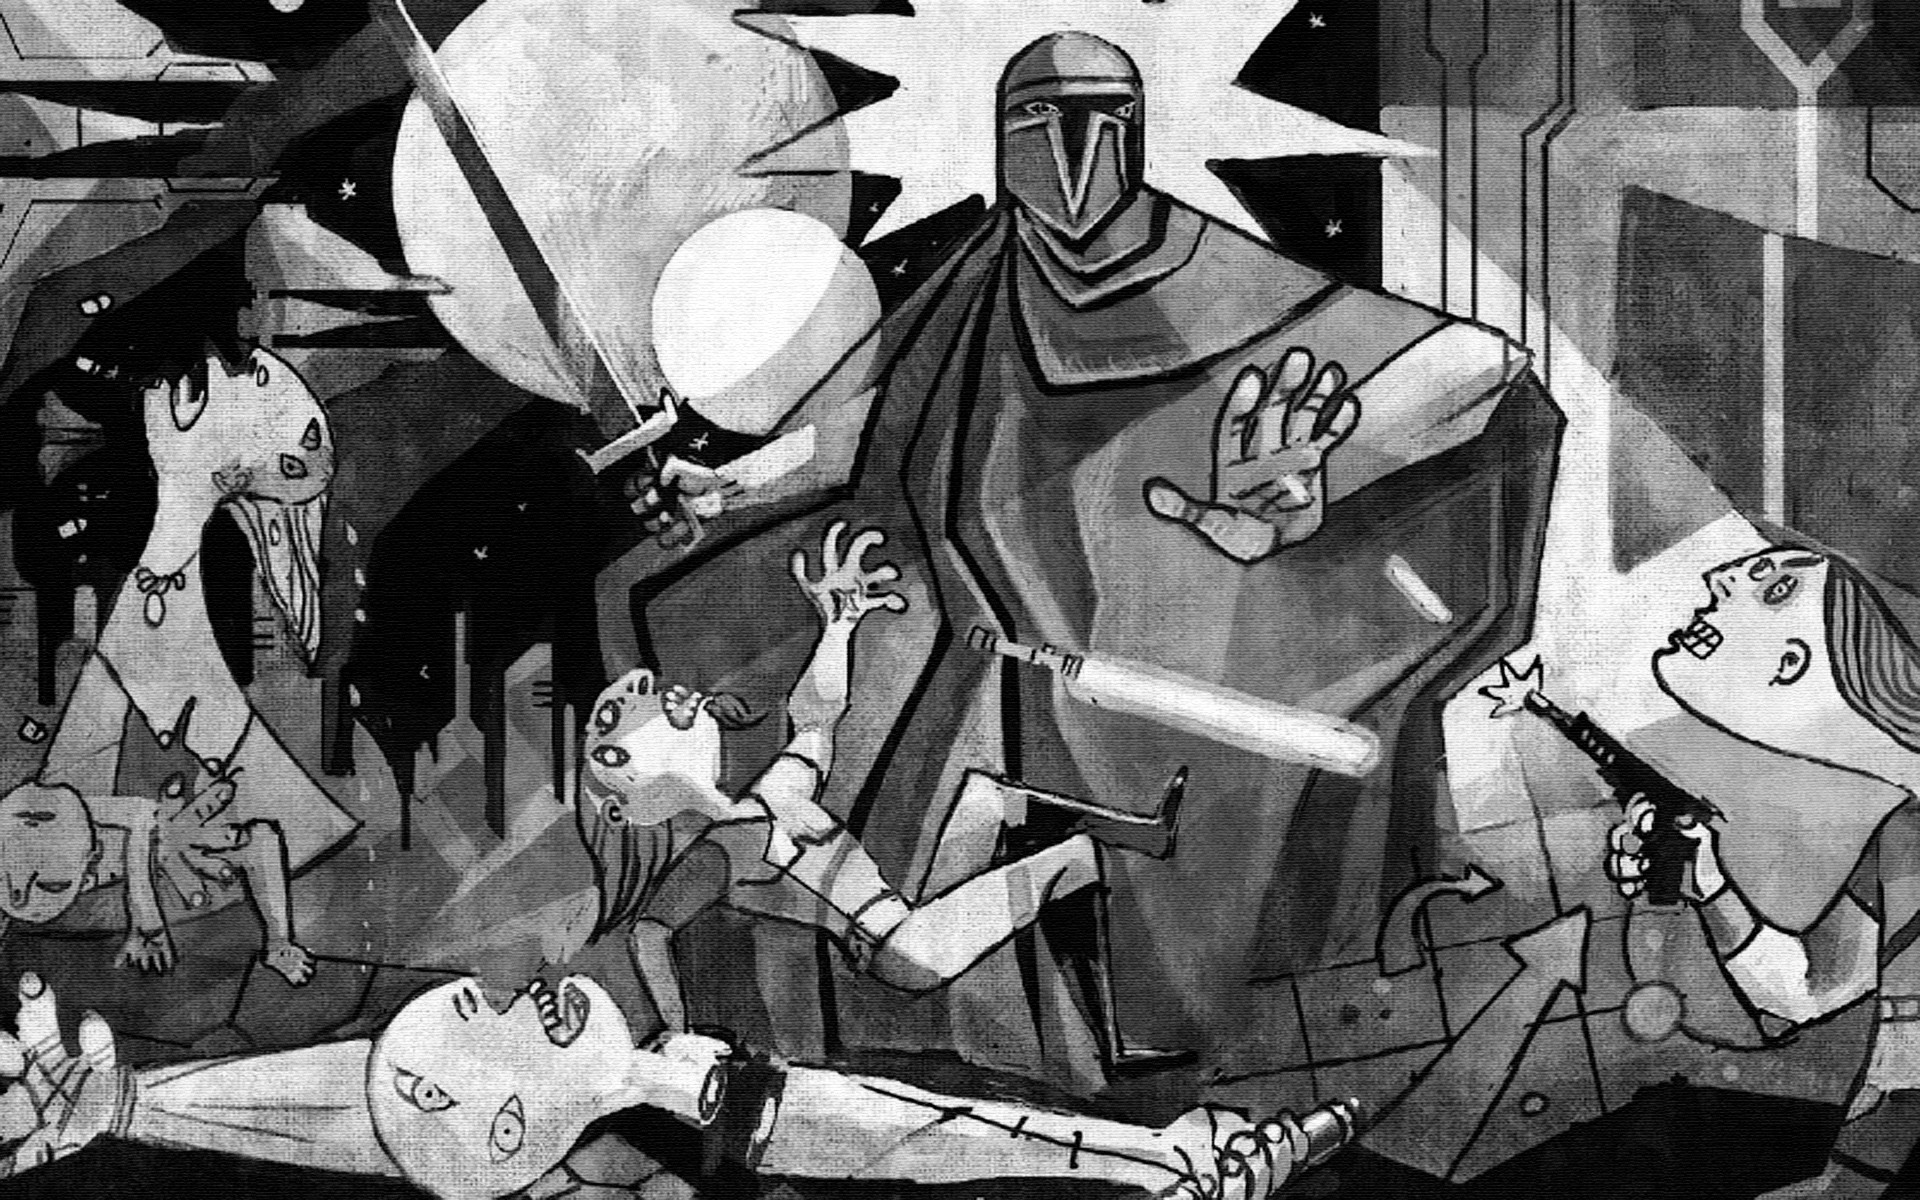 'Star Wars: Clone Wars meets Picasso's Guernica' via Empire Online  wallpaper (click for full size)